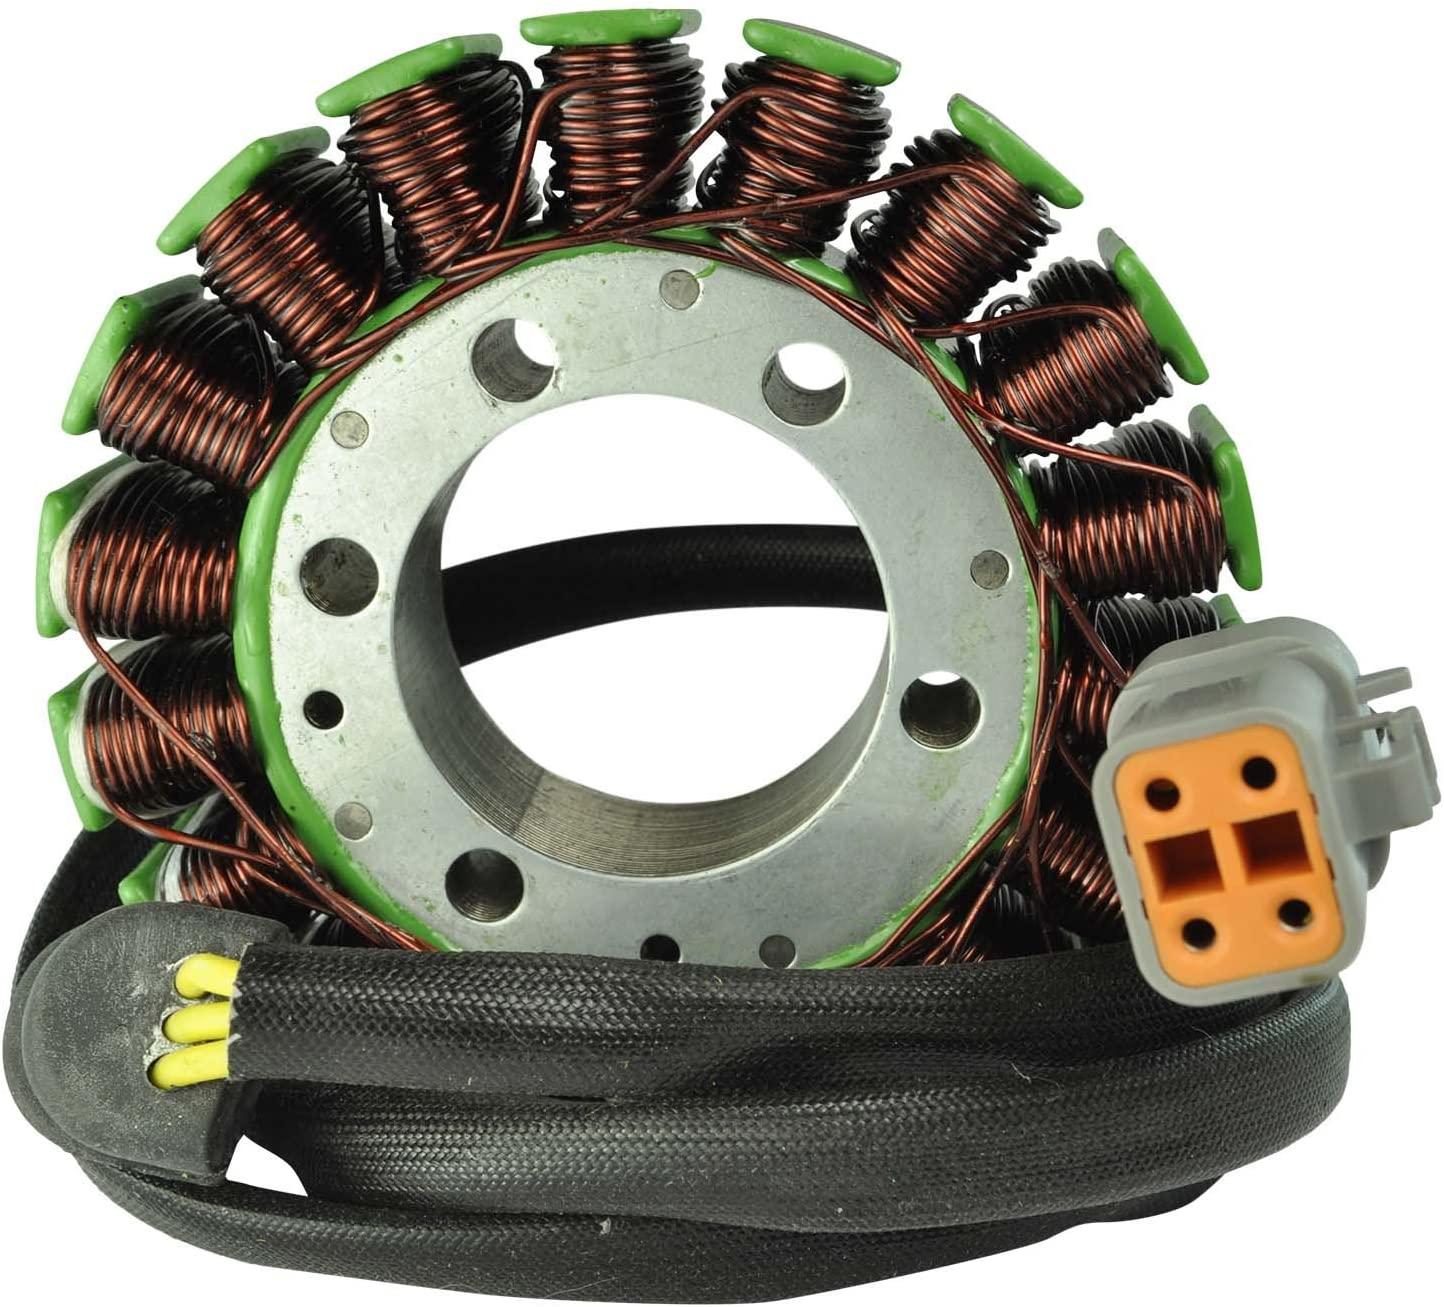 STATOR CANAM RENEGADE 800 800R STD X 4x4 EFI 2007 2008 2009-2015 FITS CAN-AM